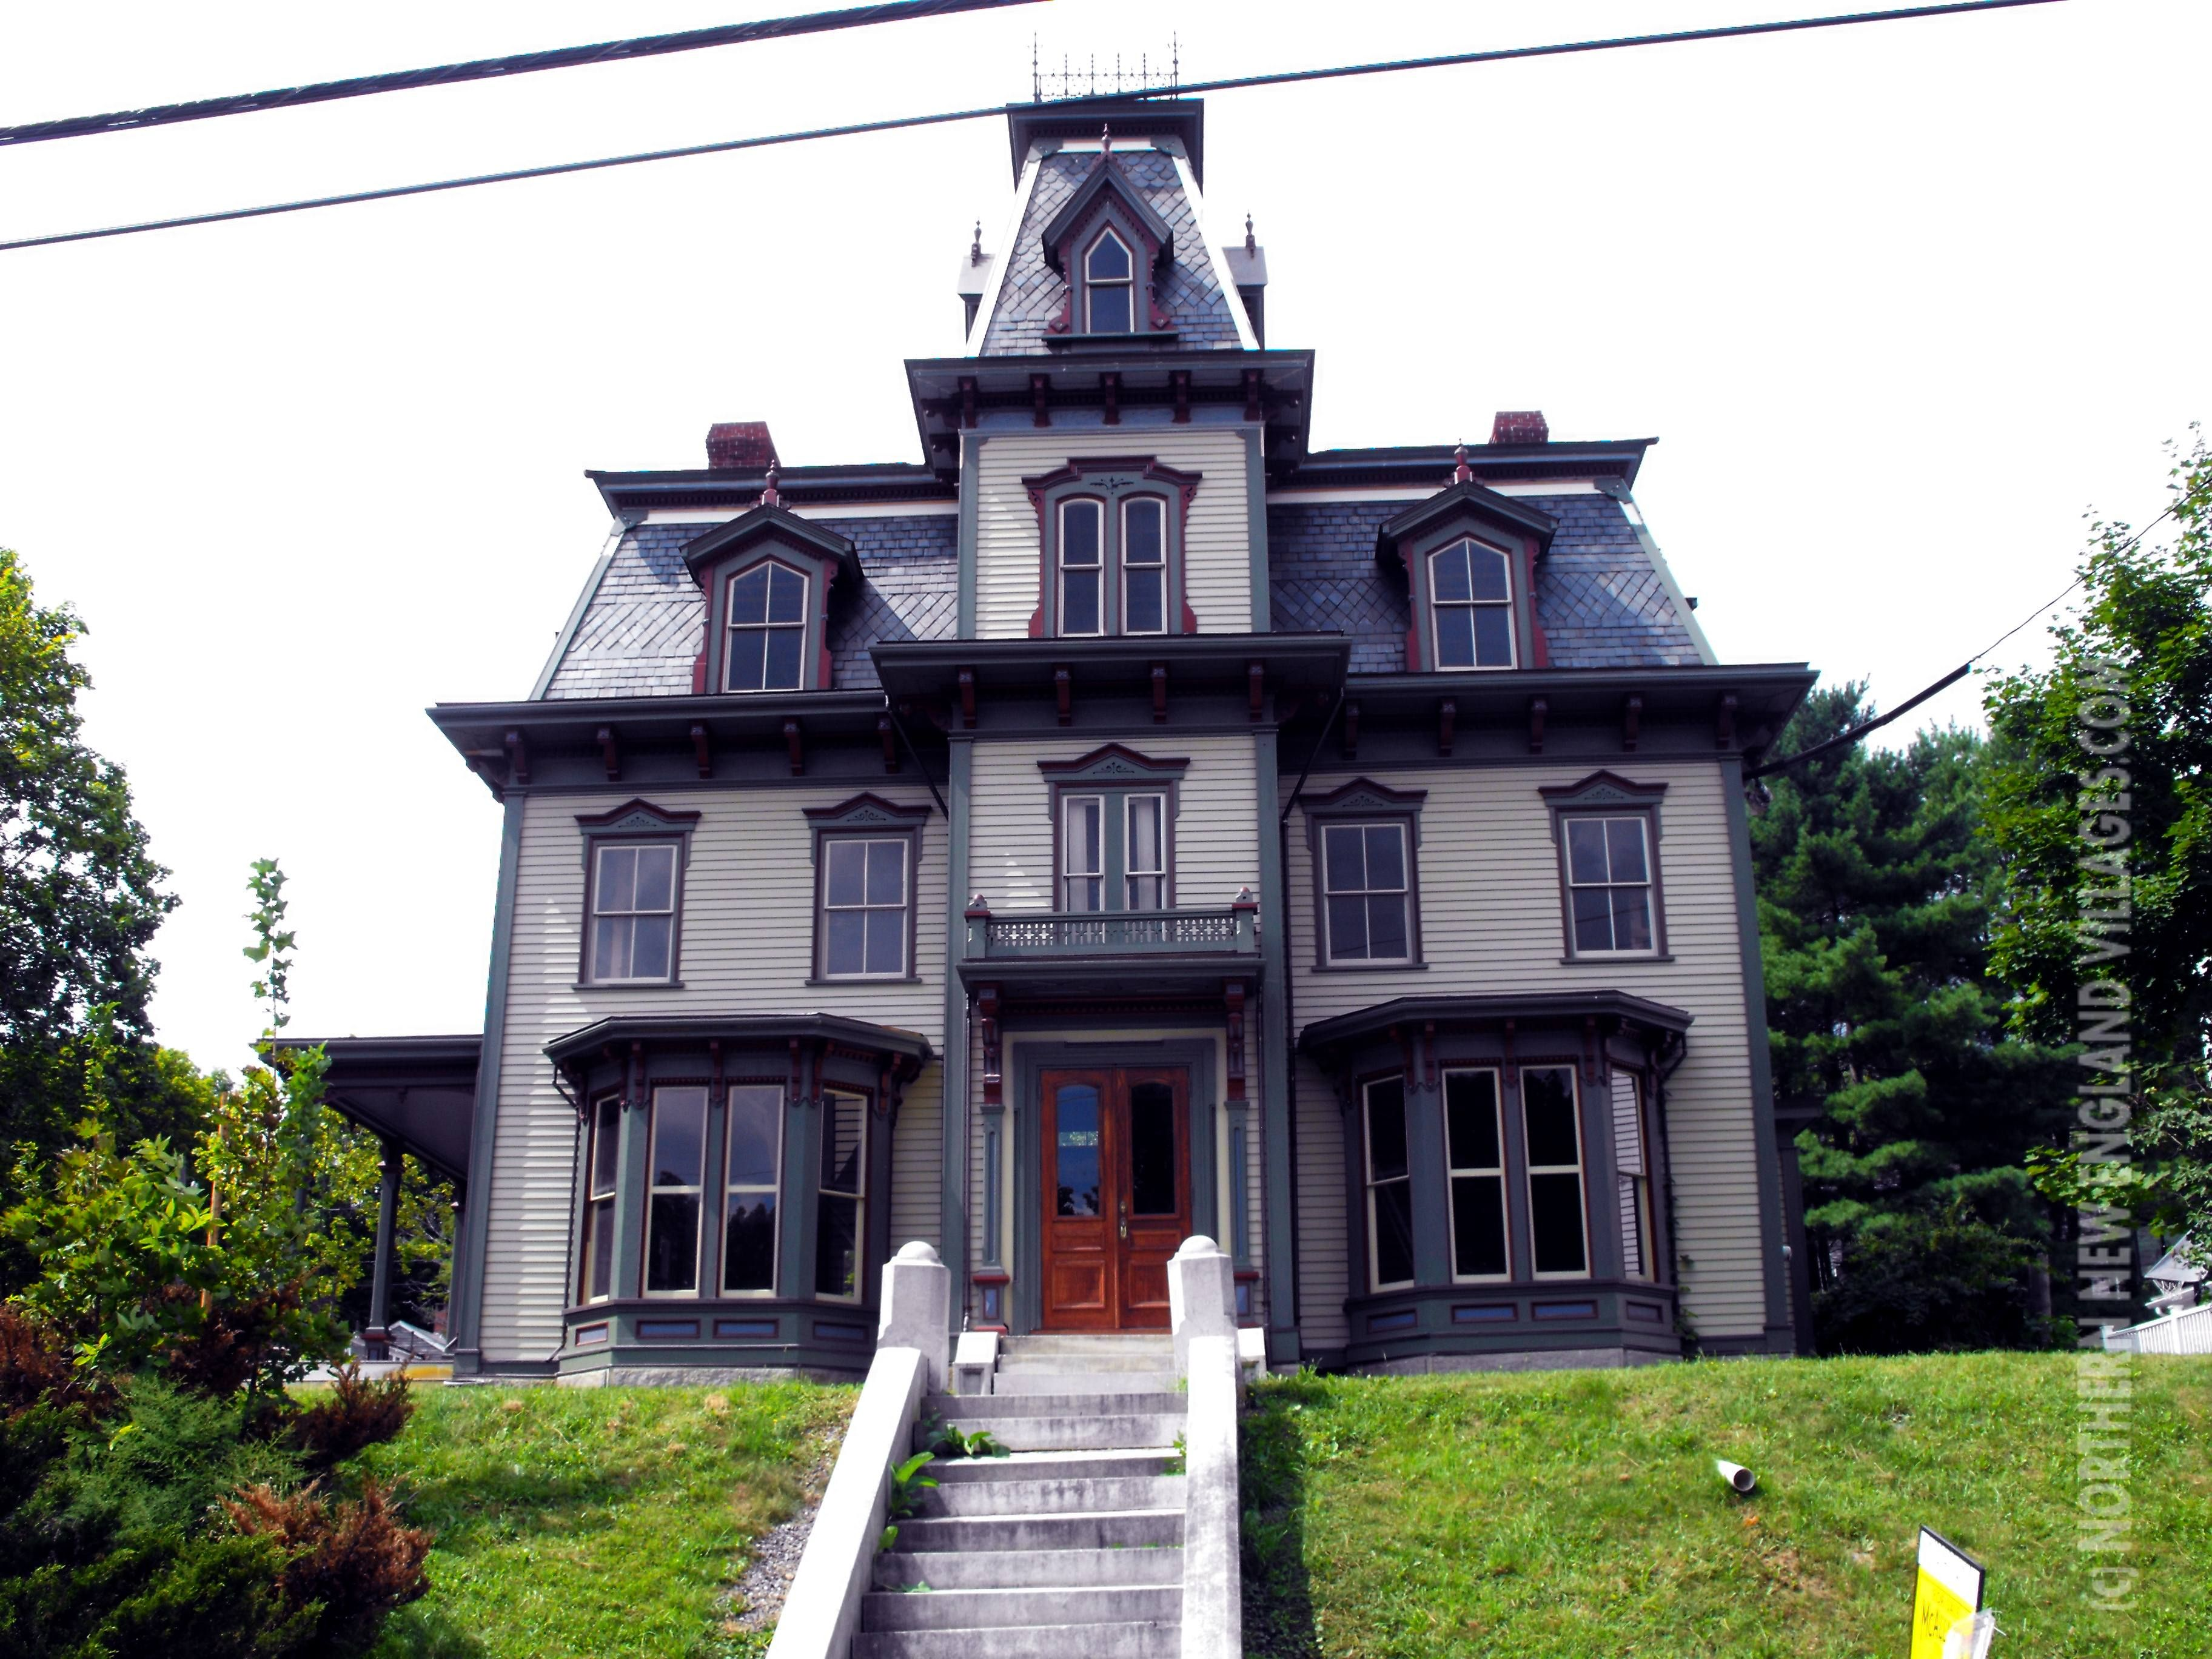 Gov. Joseph R. Bodwell Mansion in Hallowell, Mainelooks a.